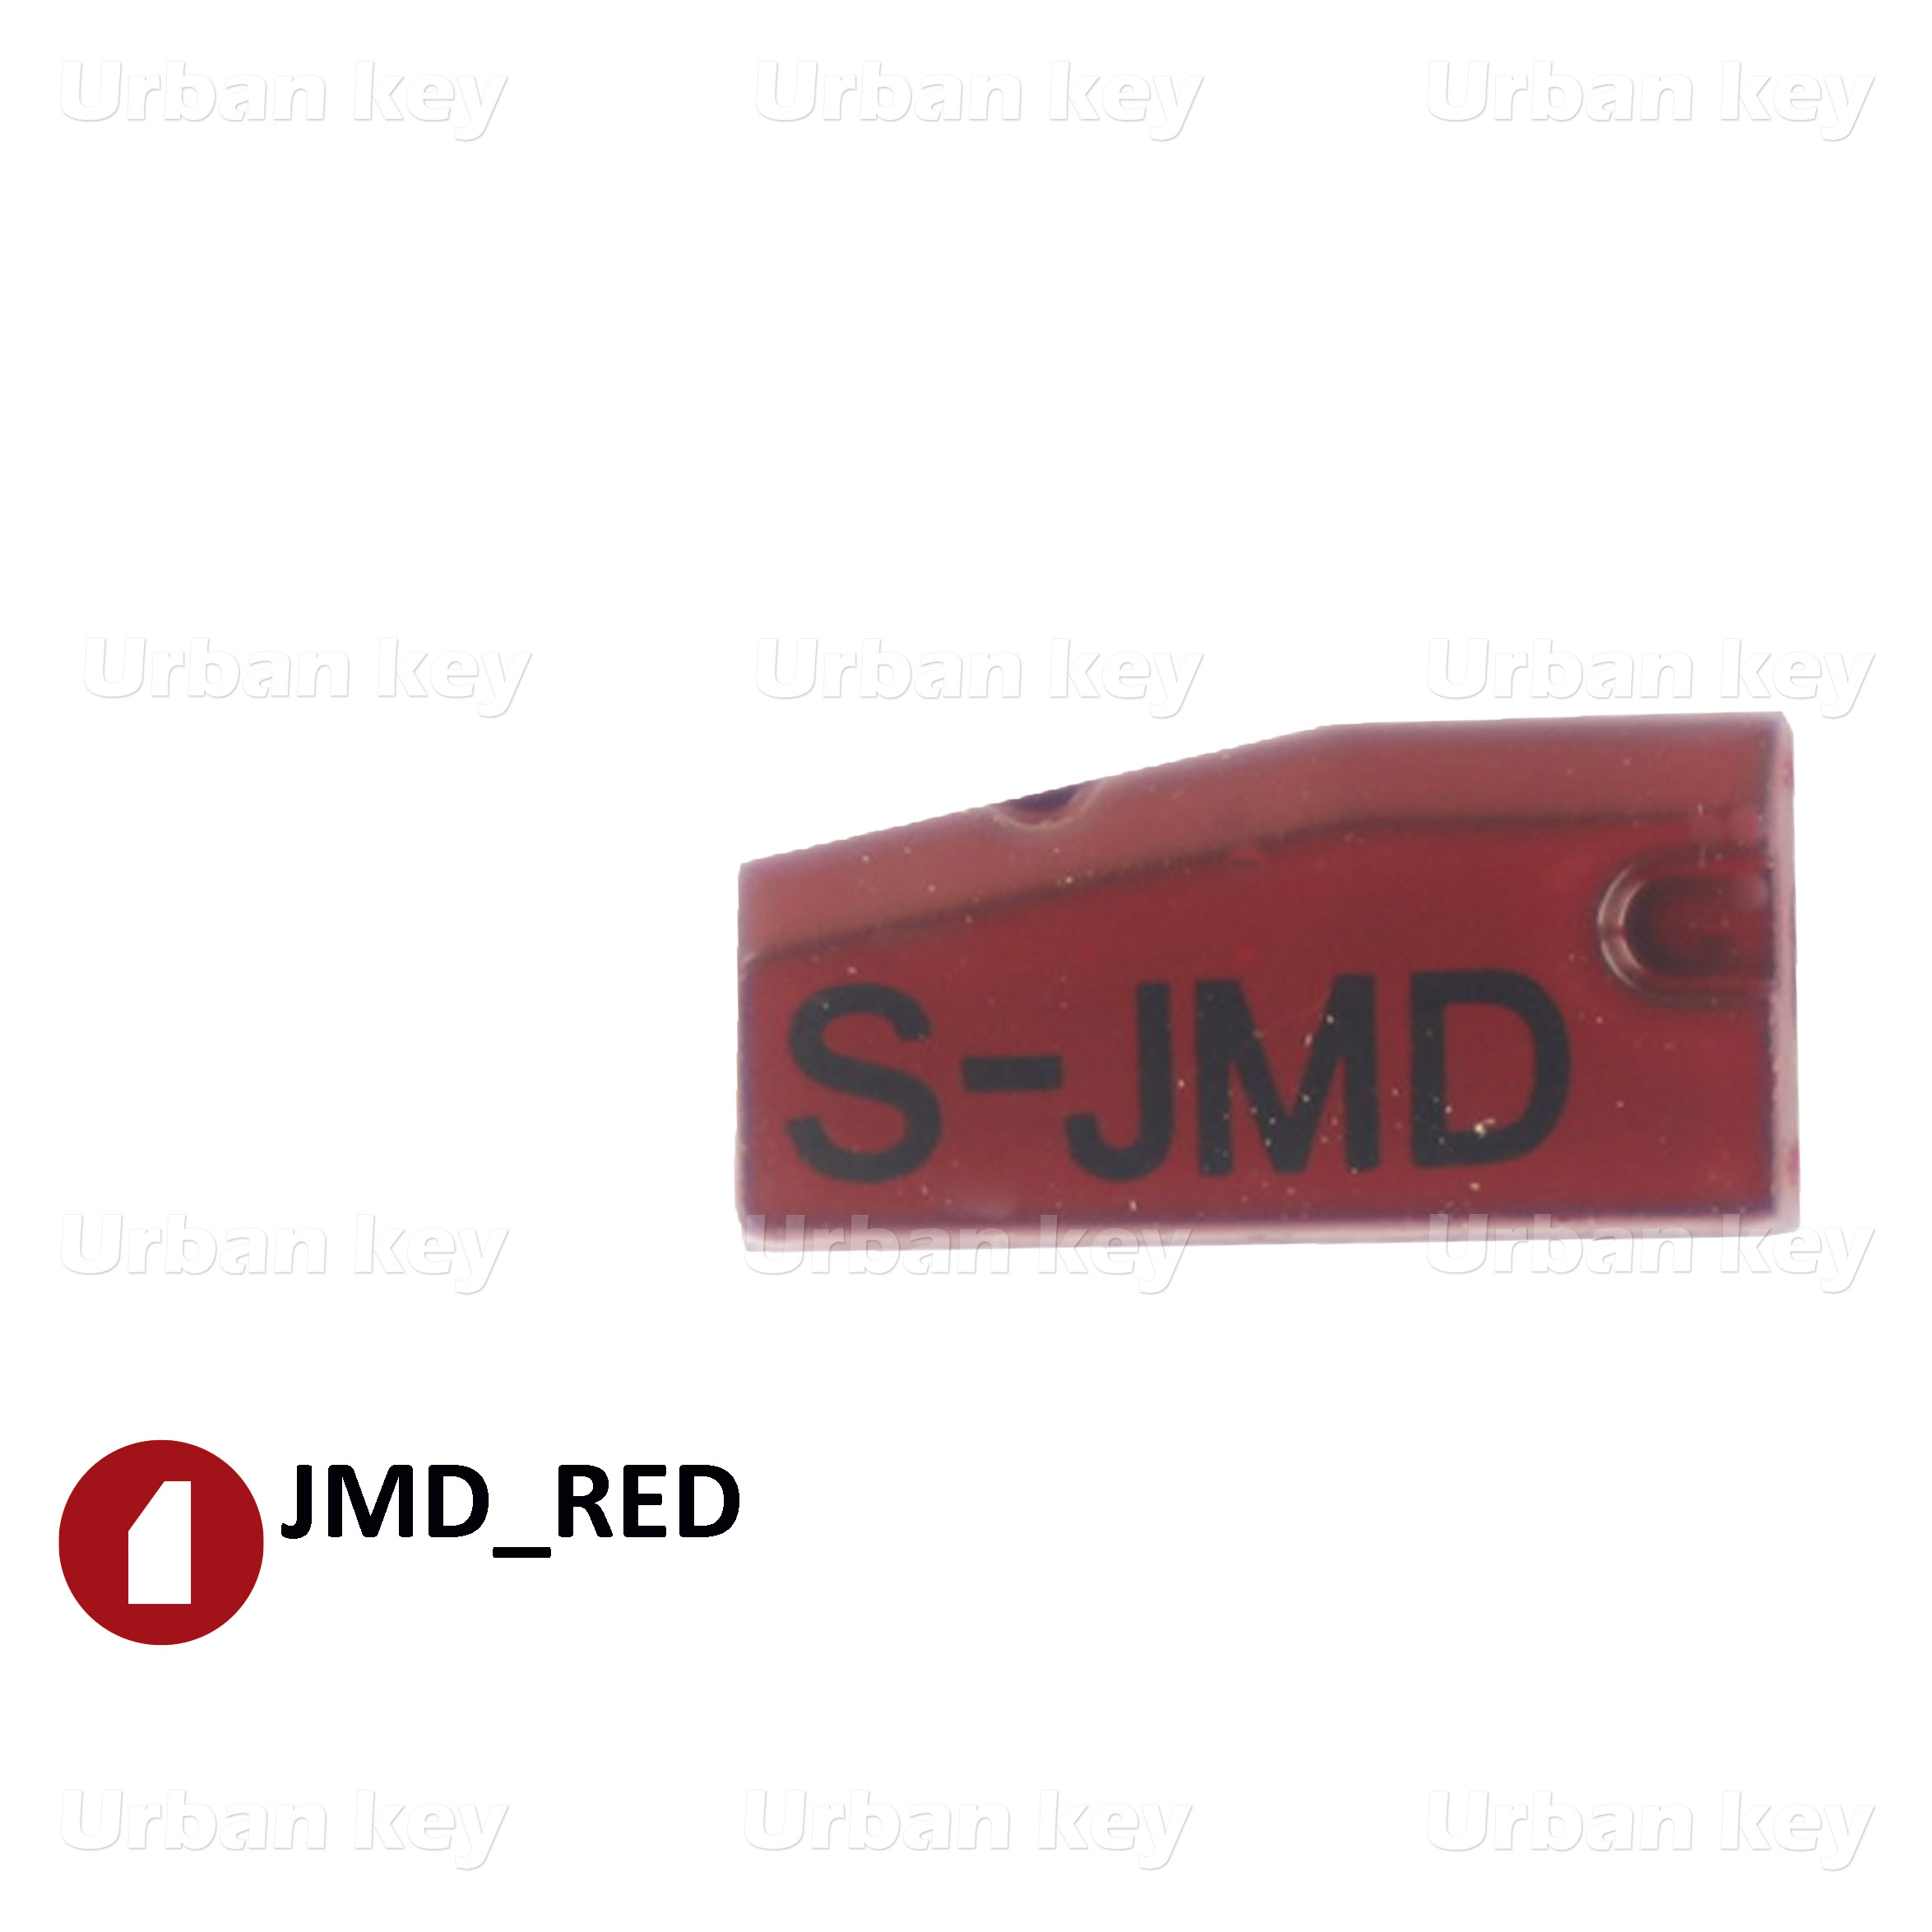 TRANSPONDER JMD RED